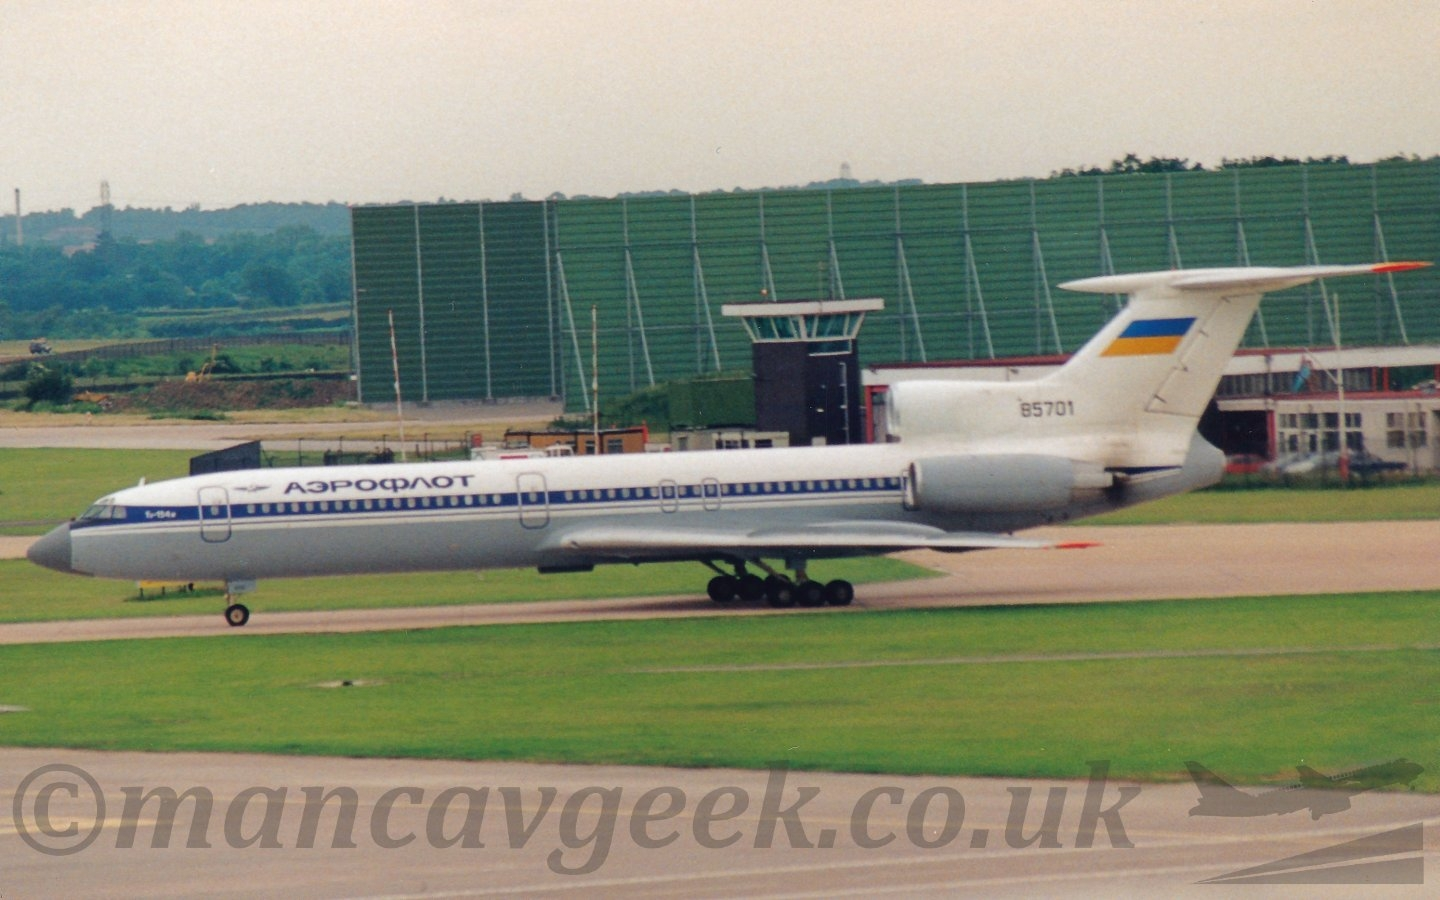 UR-85701, Tupolev Tu154, Air Uk - mancavgeek | ello